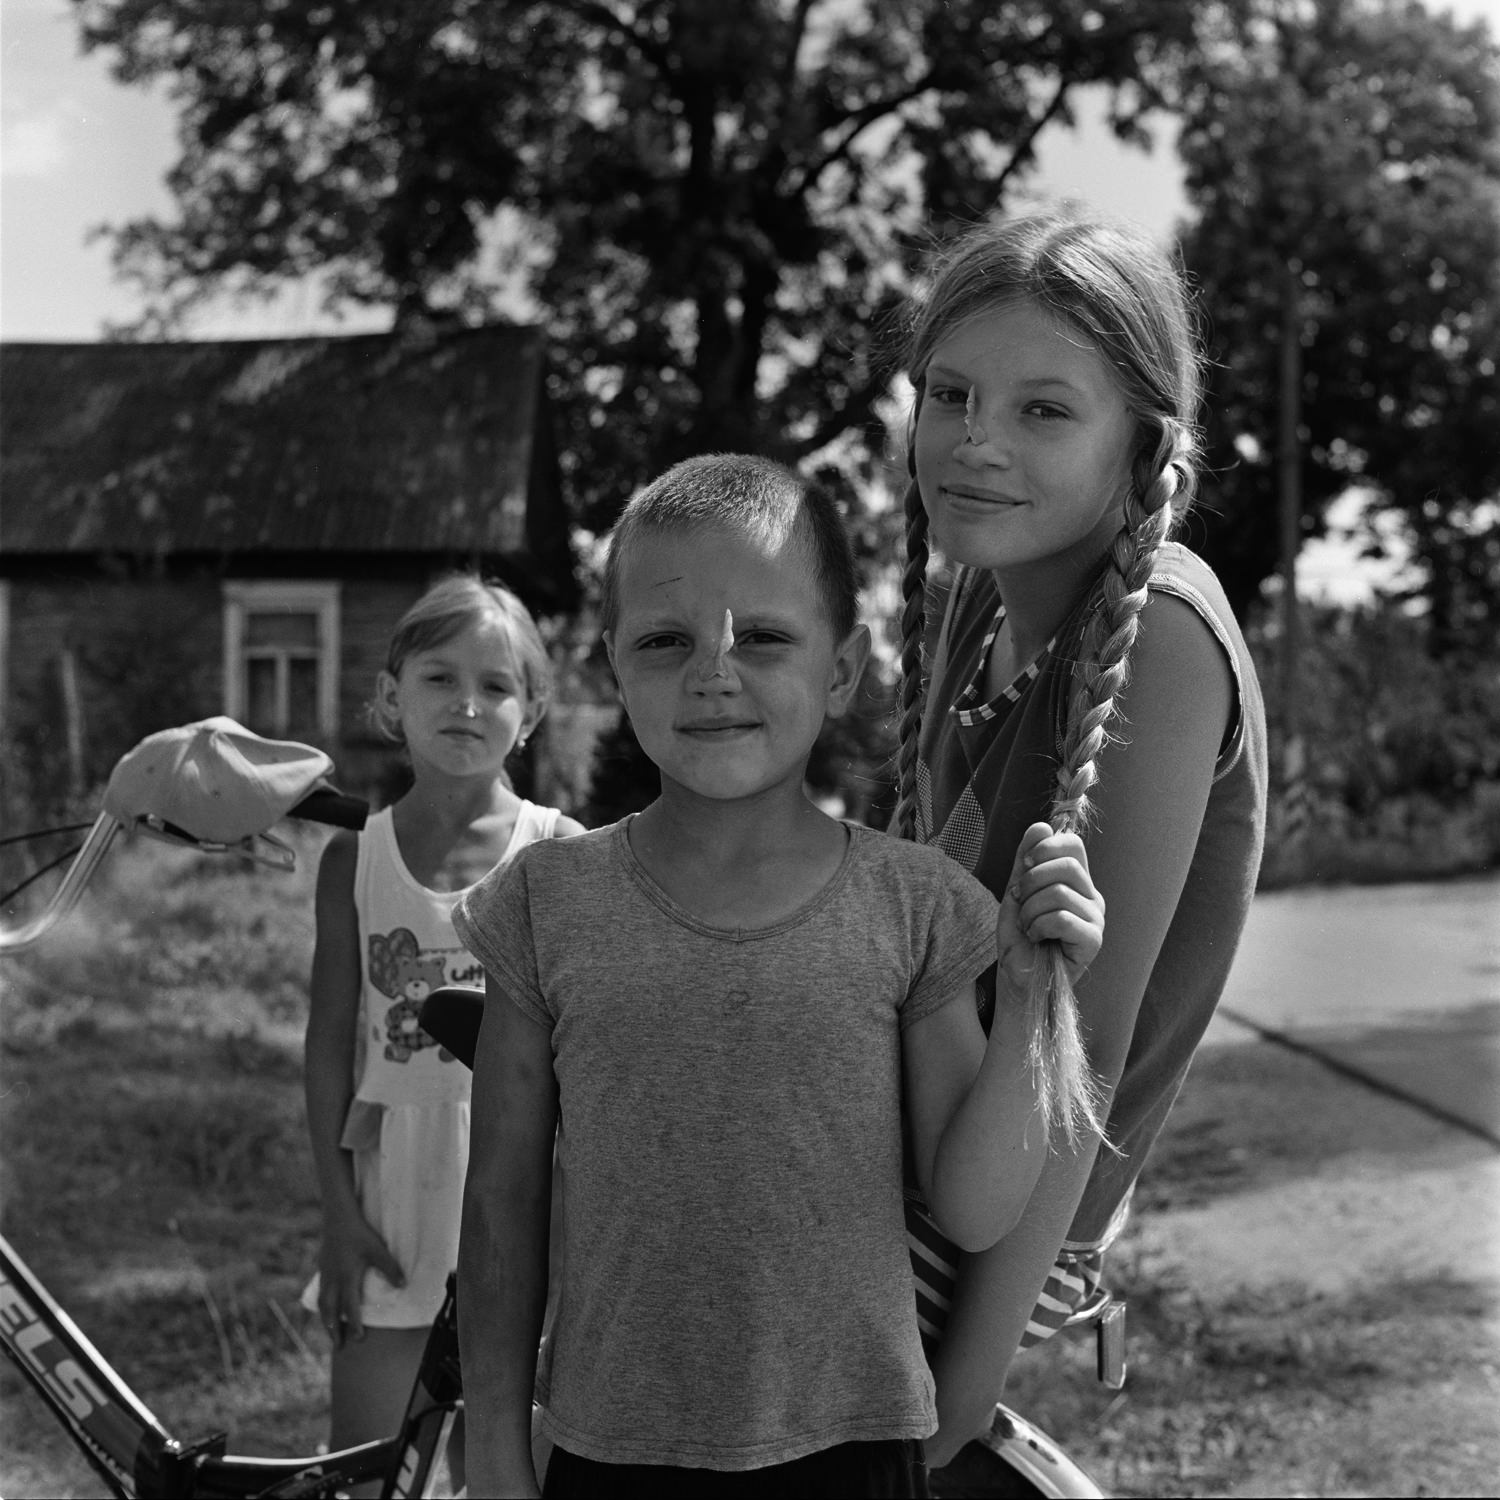 Group photo portrait of three children with maple seeds on their noses and a boy in the foreground holding the girl by her left pigtail